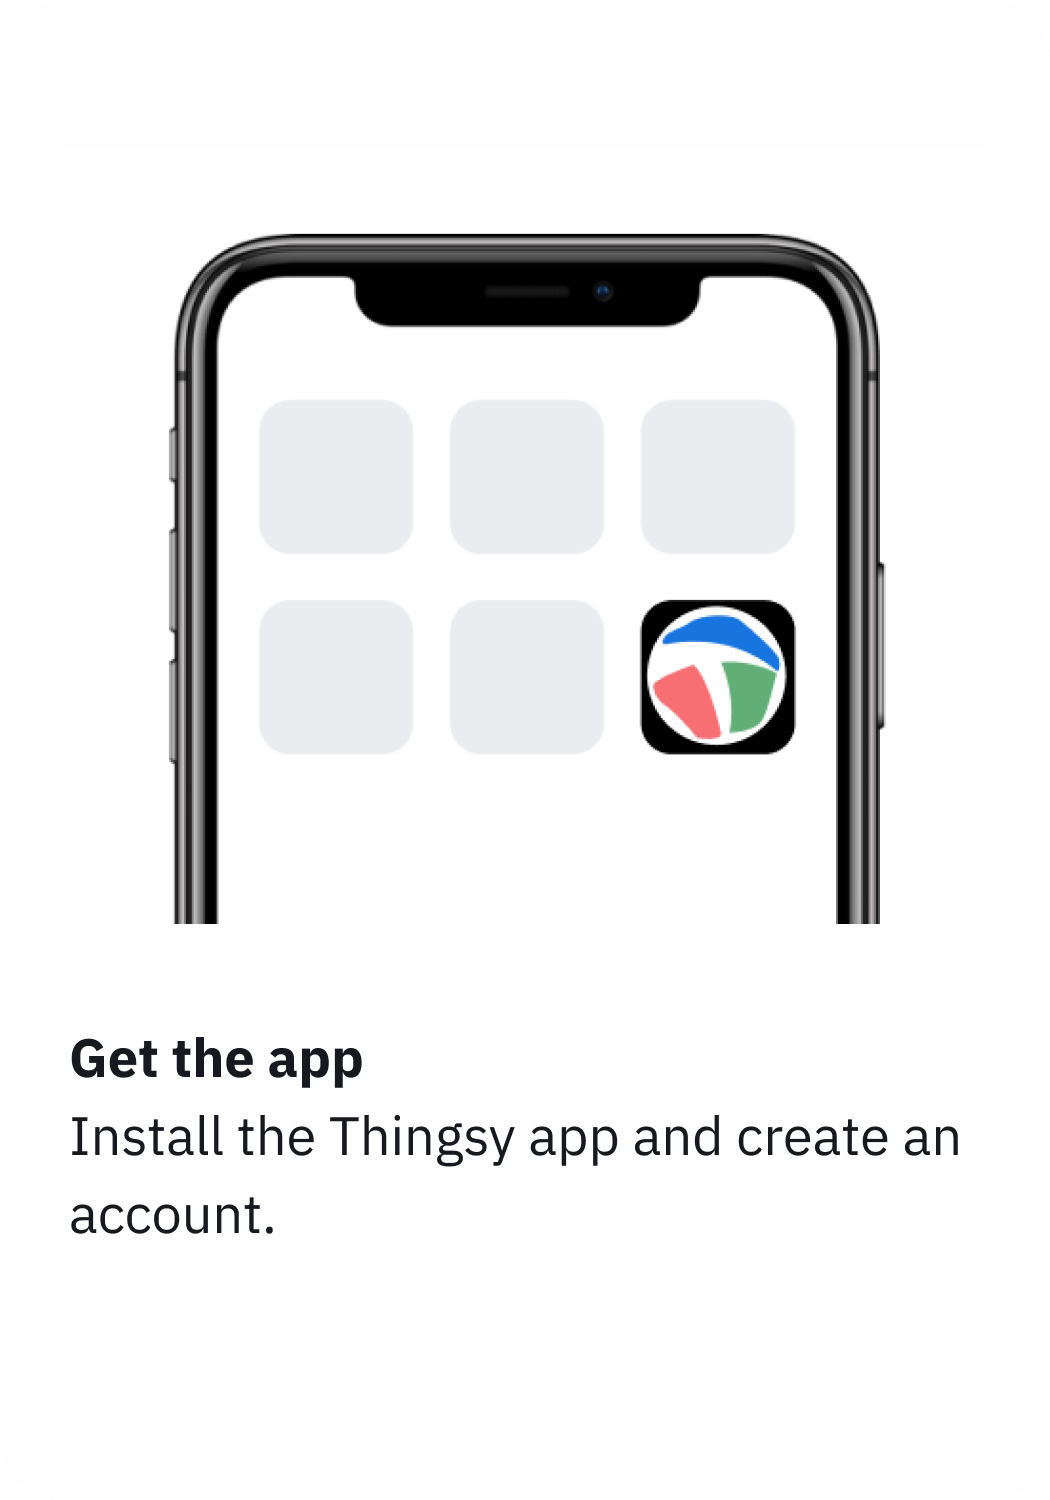 get the thingsy app